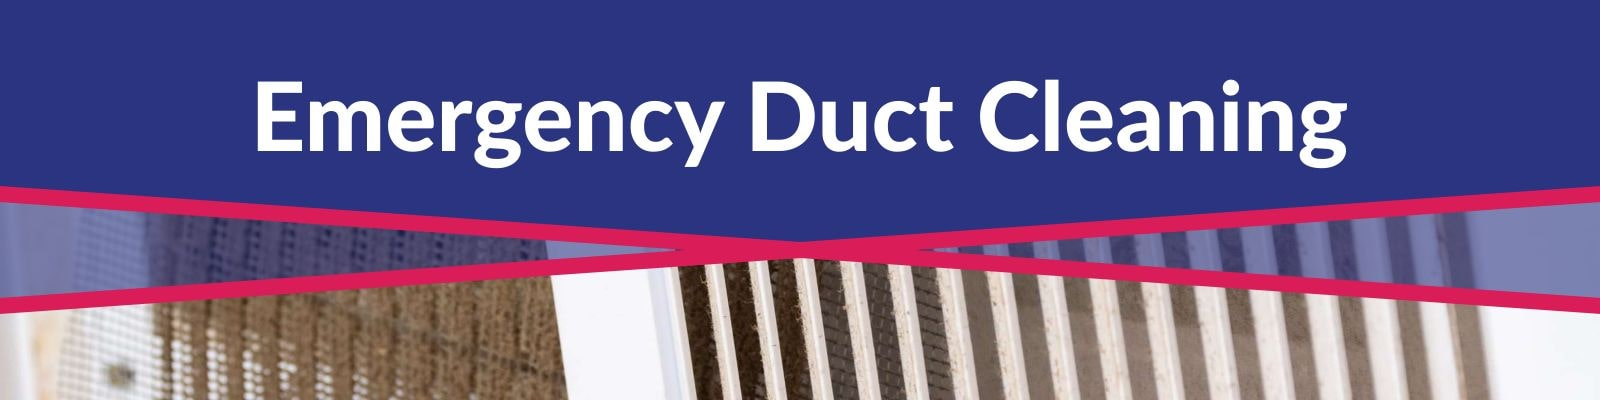 evaporative ducts cleaning service